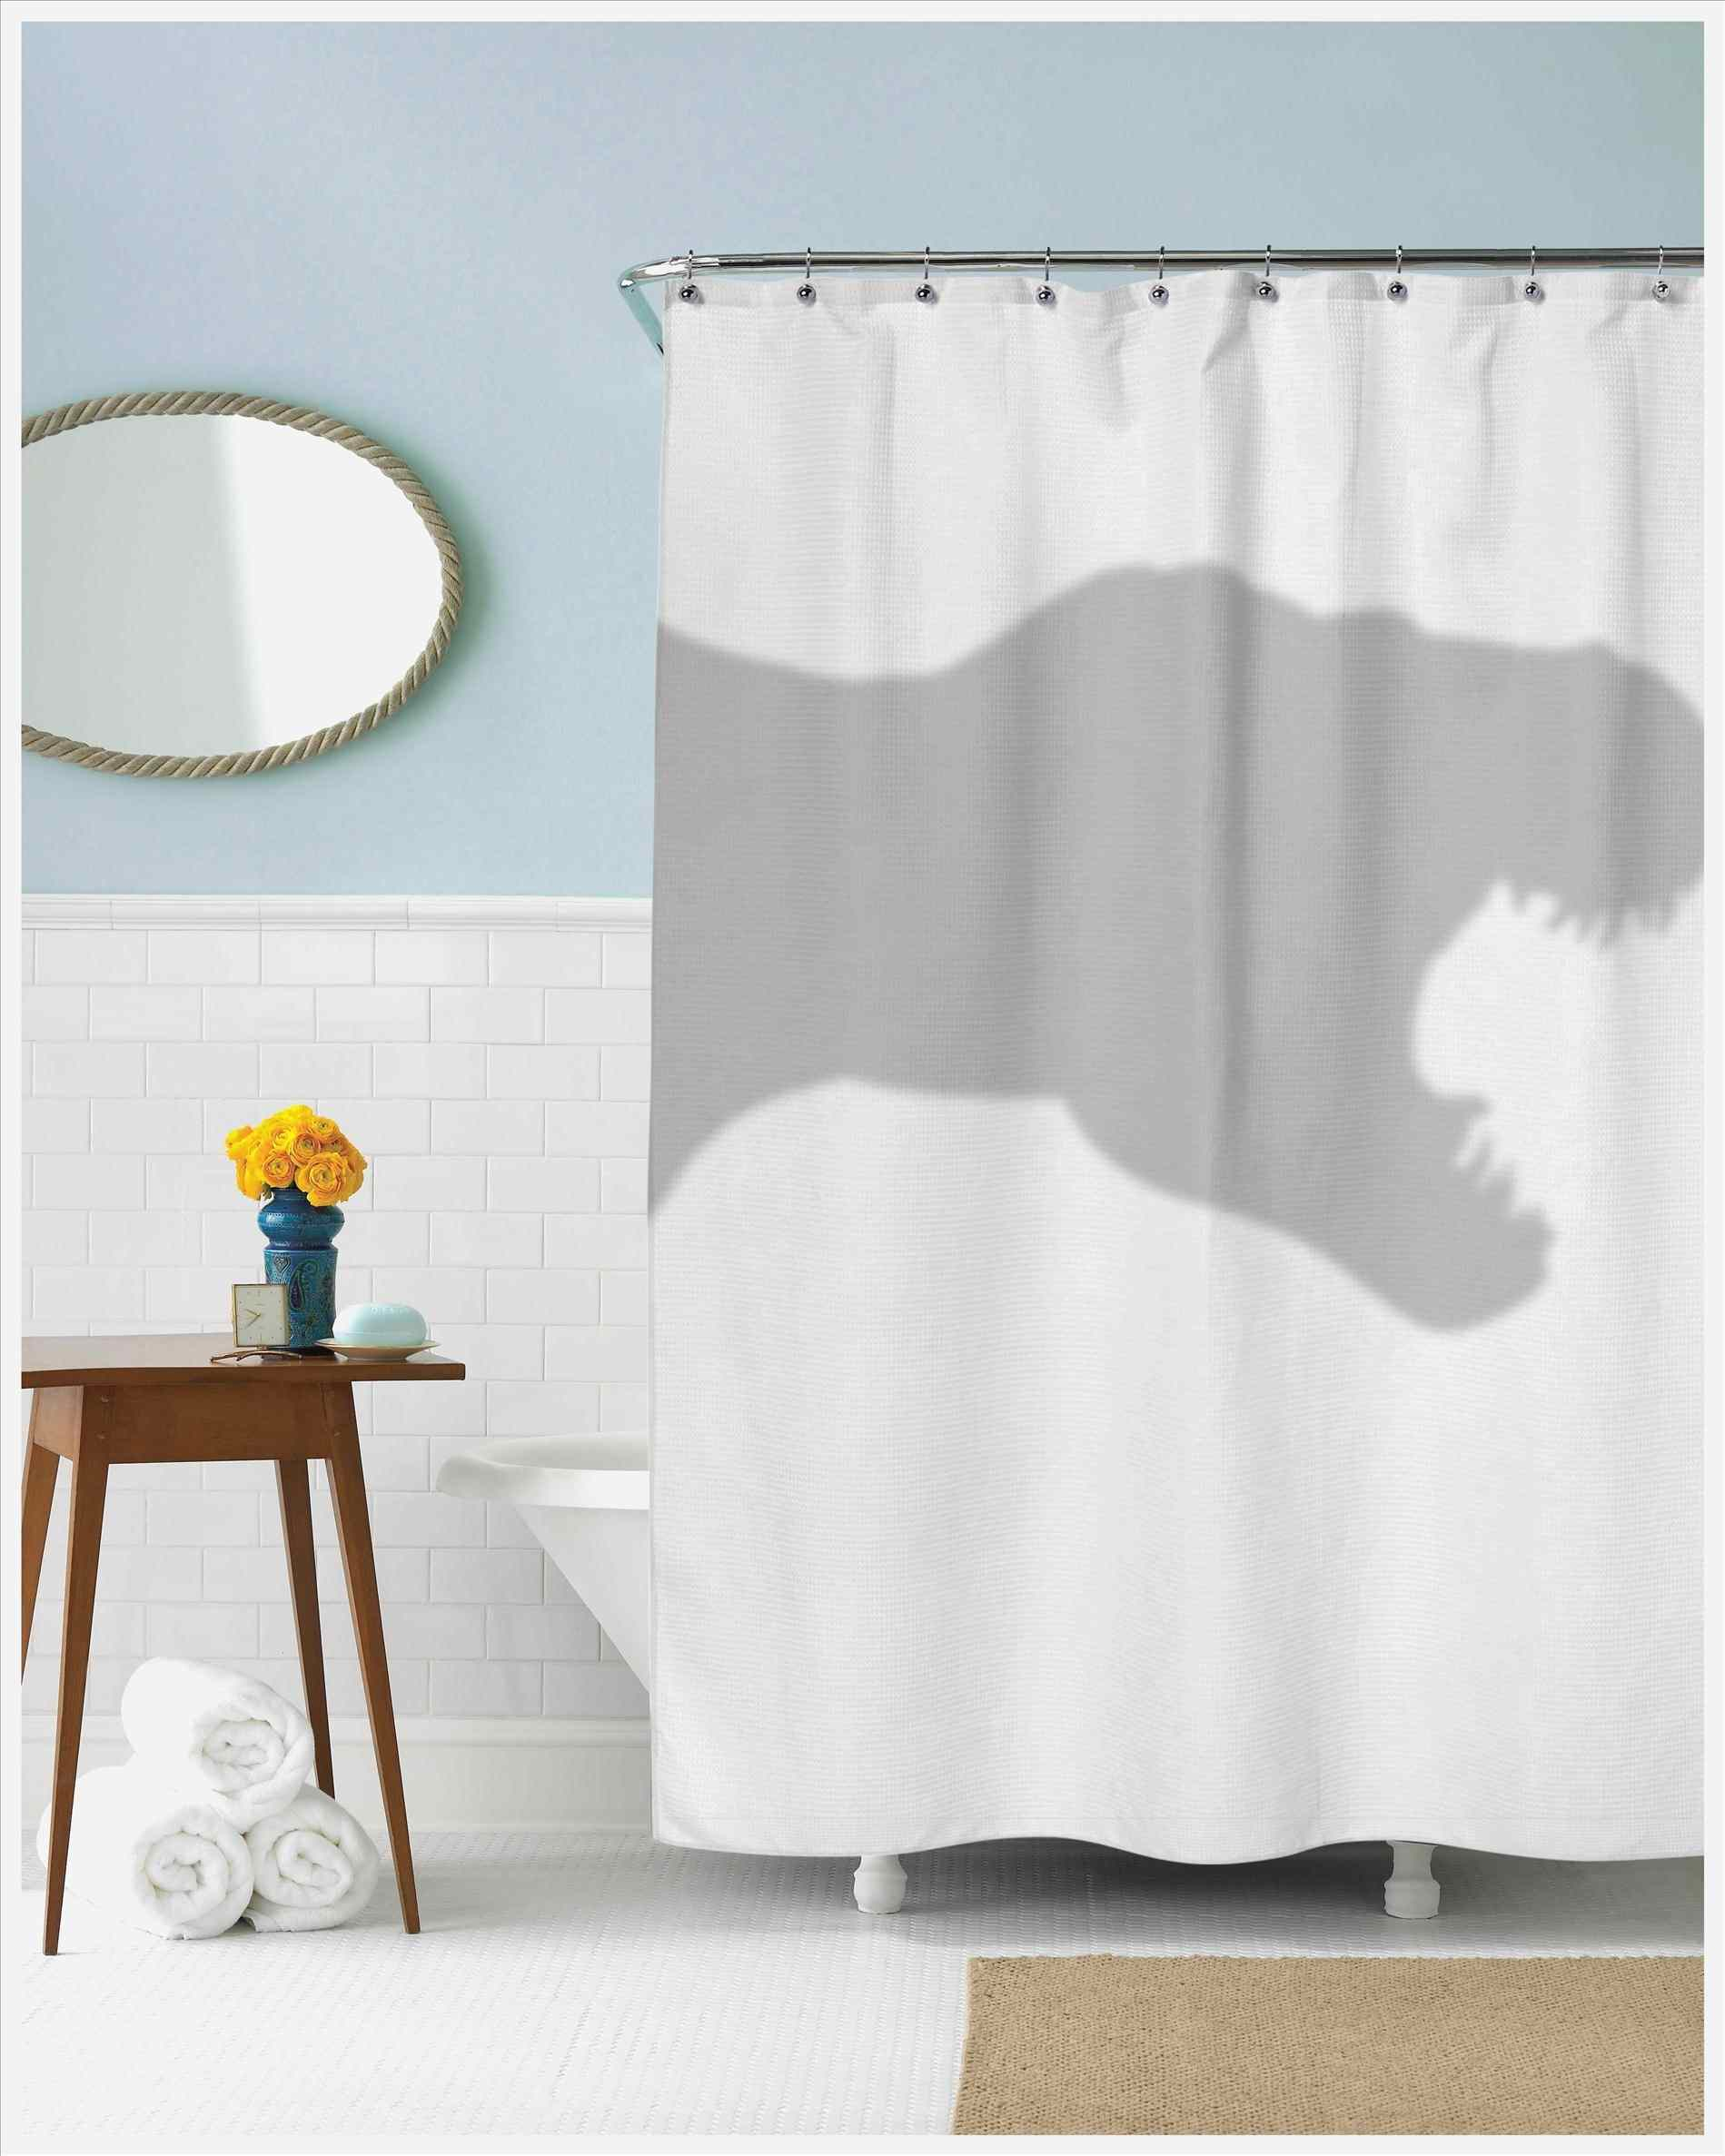 Fun Shower Curtains For Adults Adeal throughout dimensions 1899 X 2374